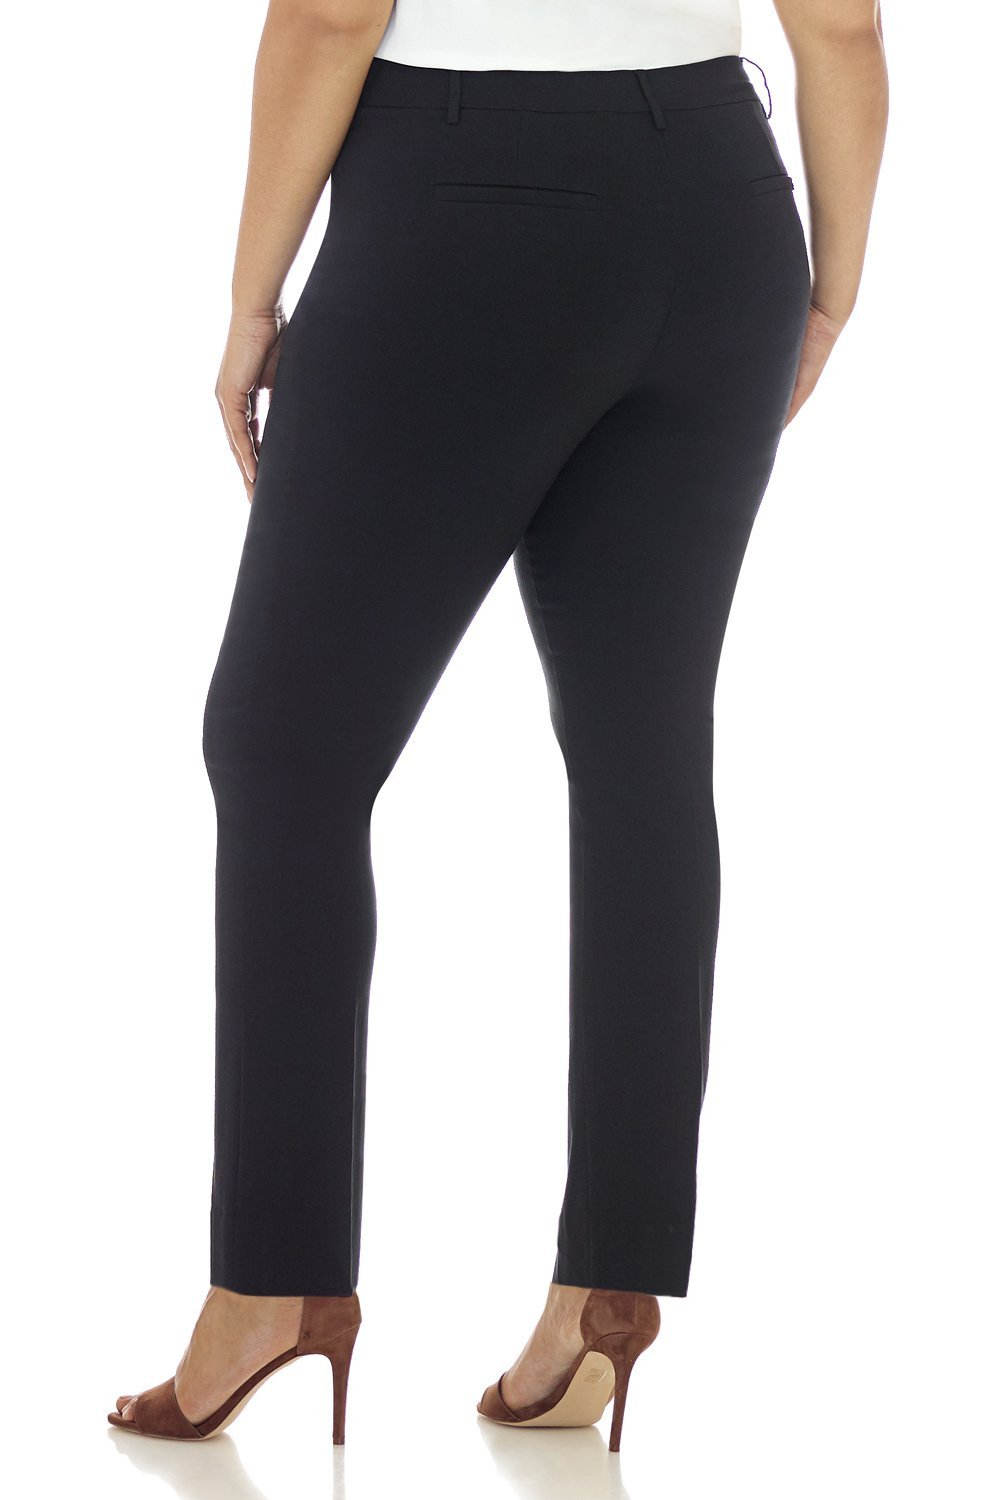 Rekucci Curvy Woman Ease in to Comfort Straight Leg Plus Size Pant w/Tummy Control (18W,Black) by Rekucci (Image #3)